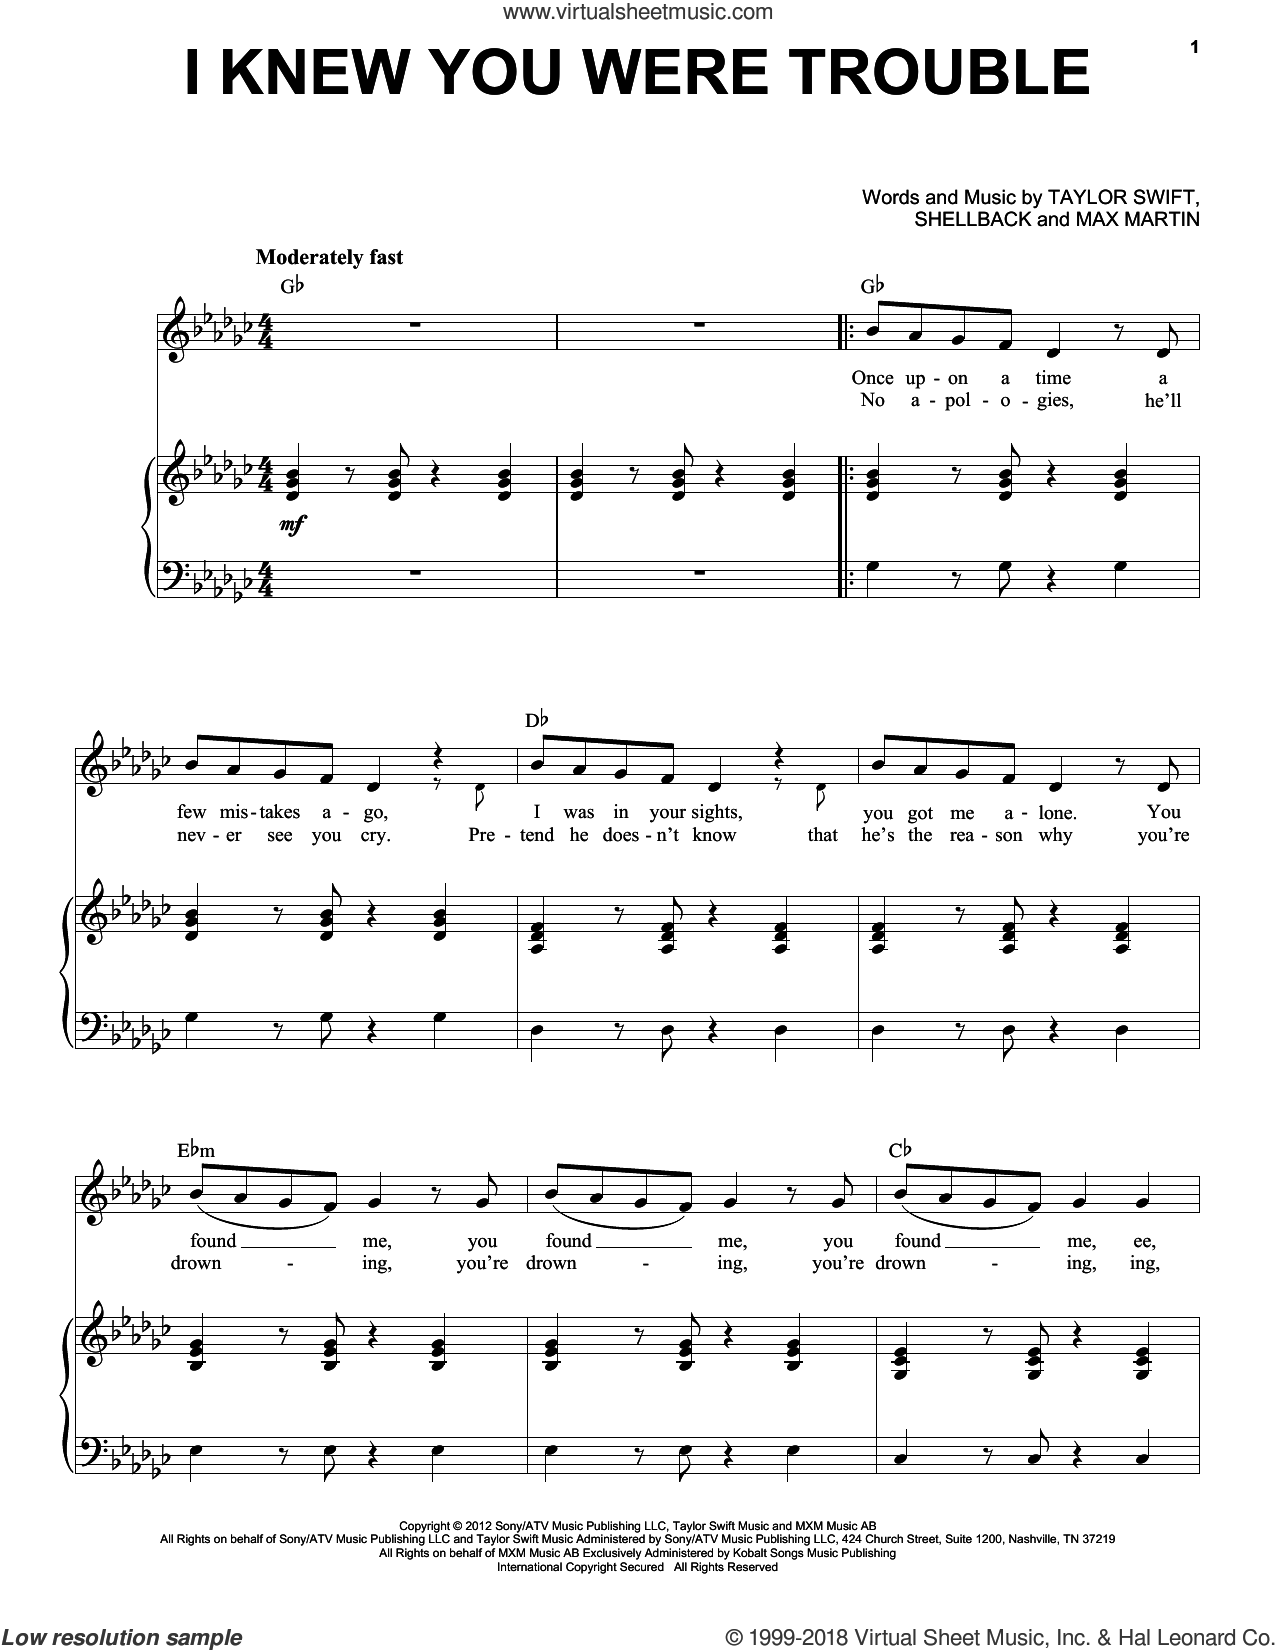 I Knew You Were Trouble sheet music for voice and piano by Taylor Swift, Max Martin and Shellback, intermediate skill level